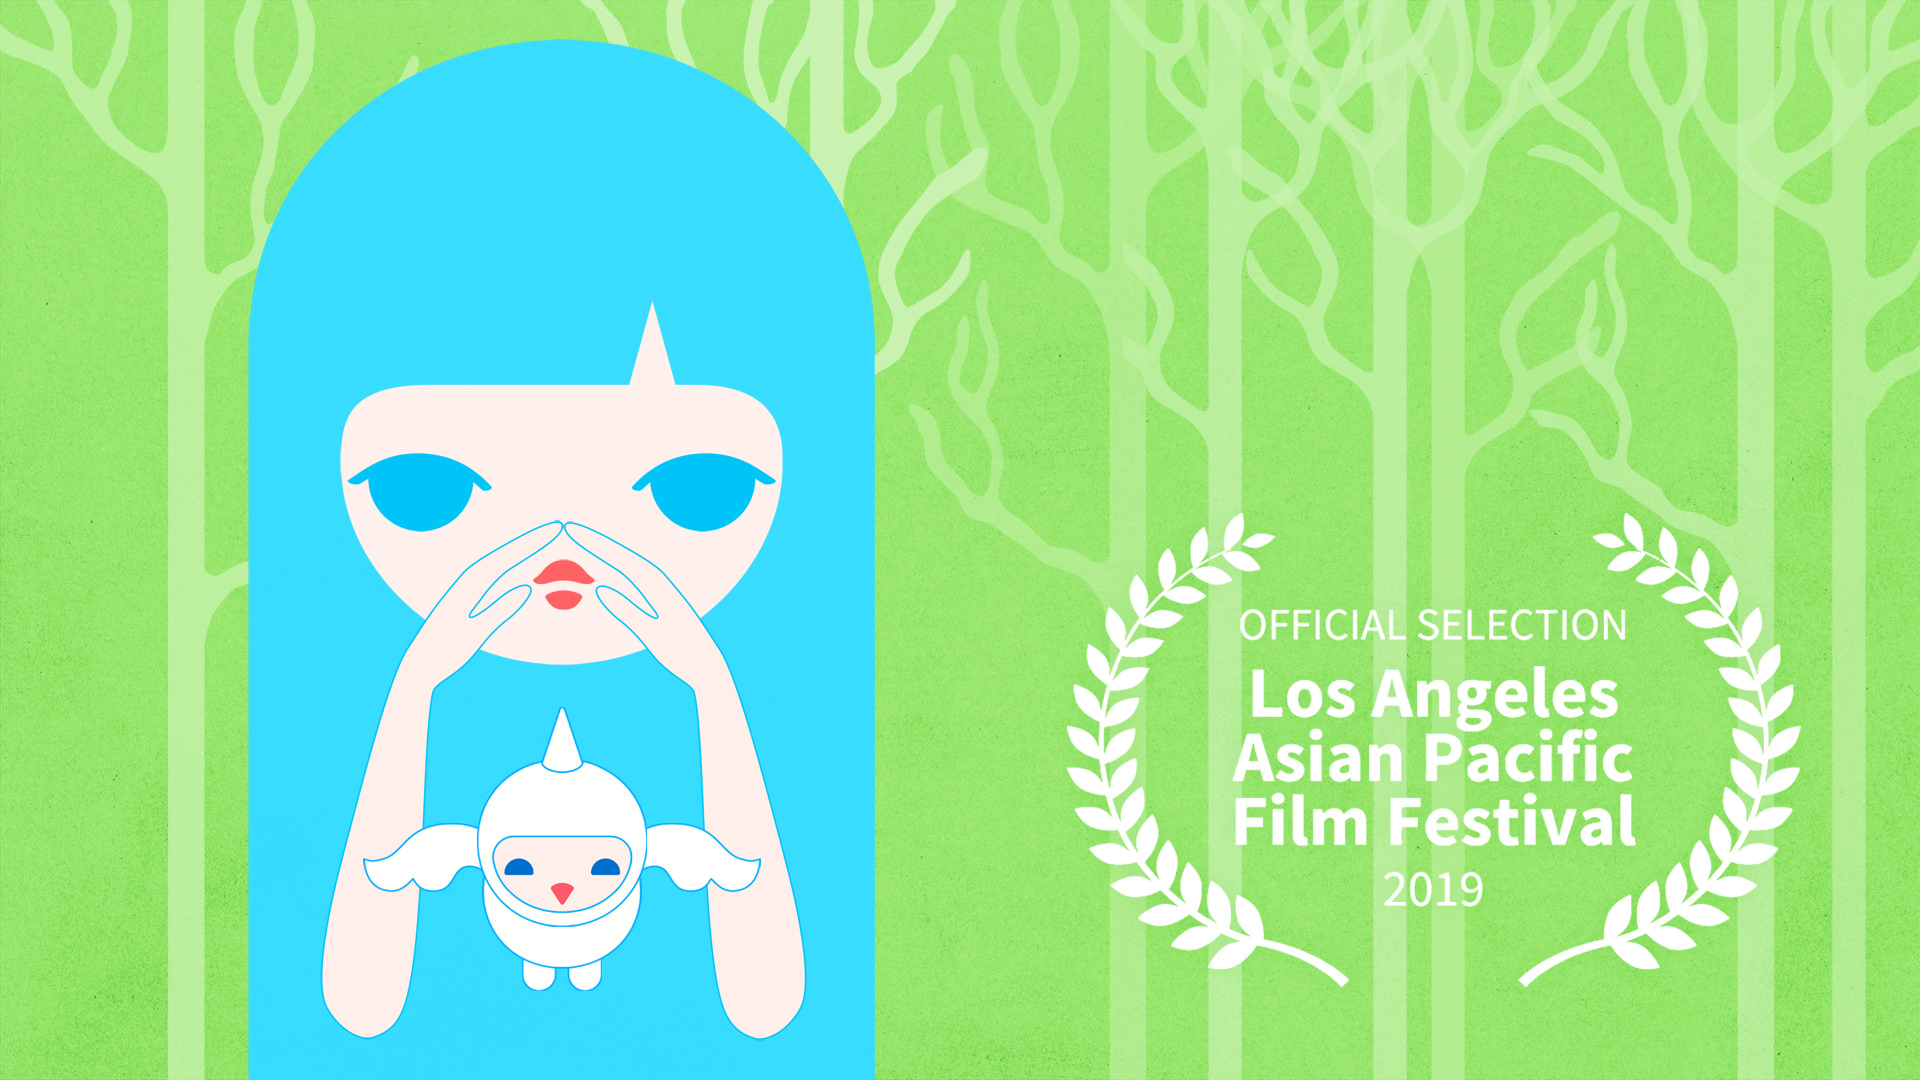 Los Angeles Asian Pacific Film Festival Itsy Bitsy Shorts